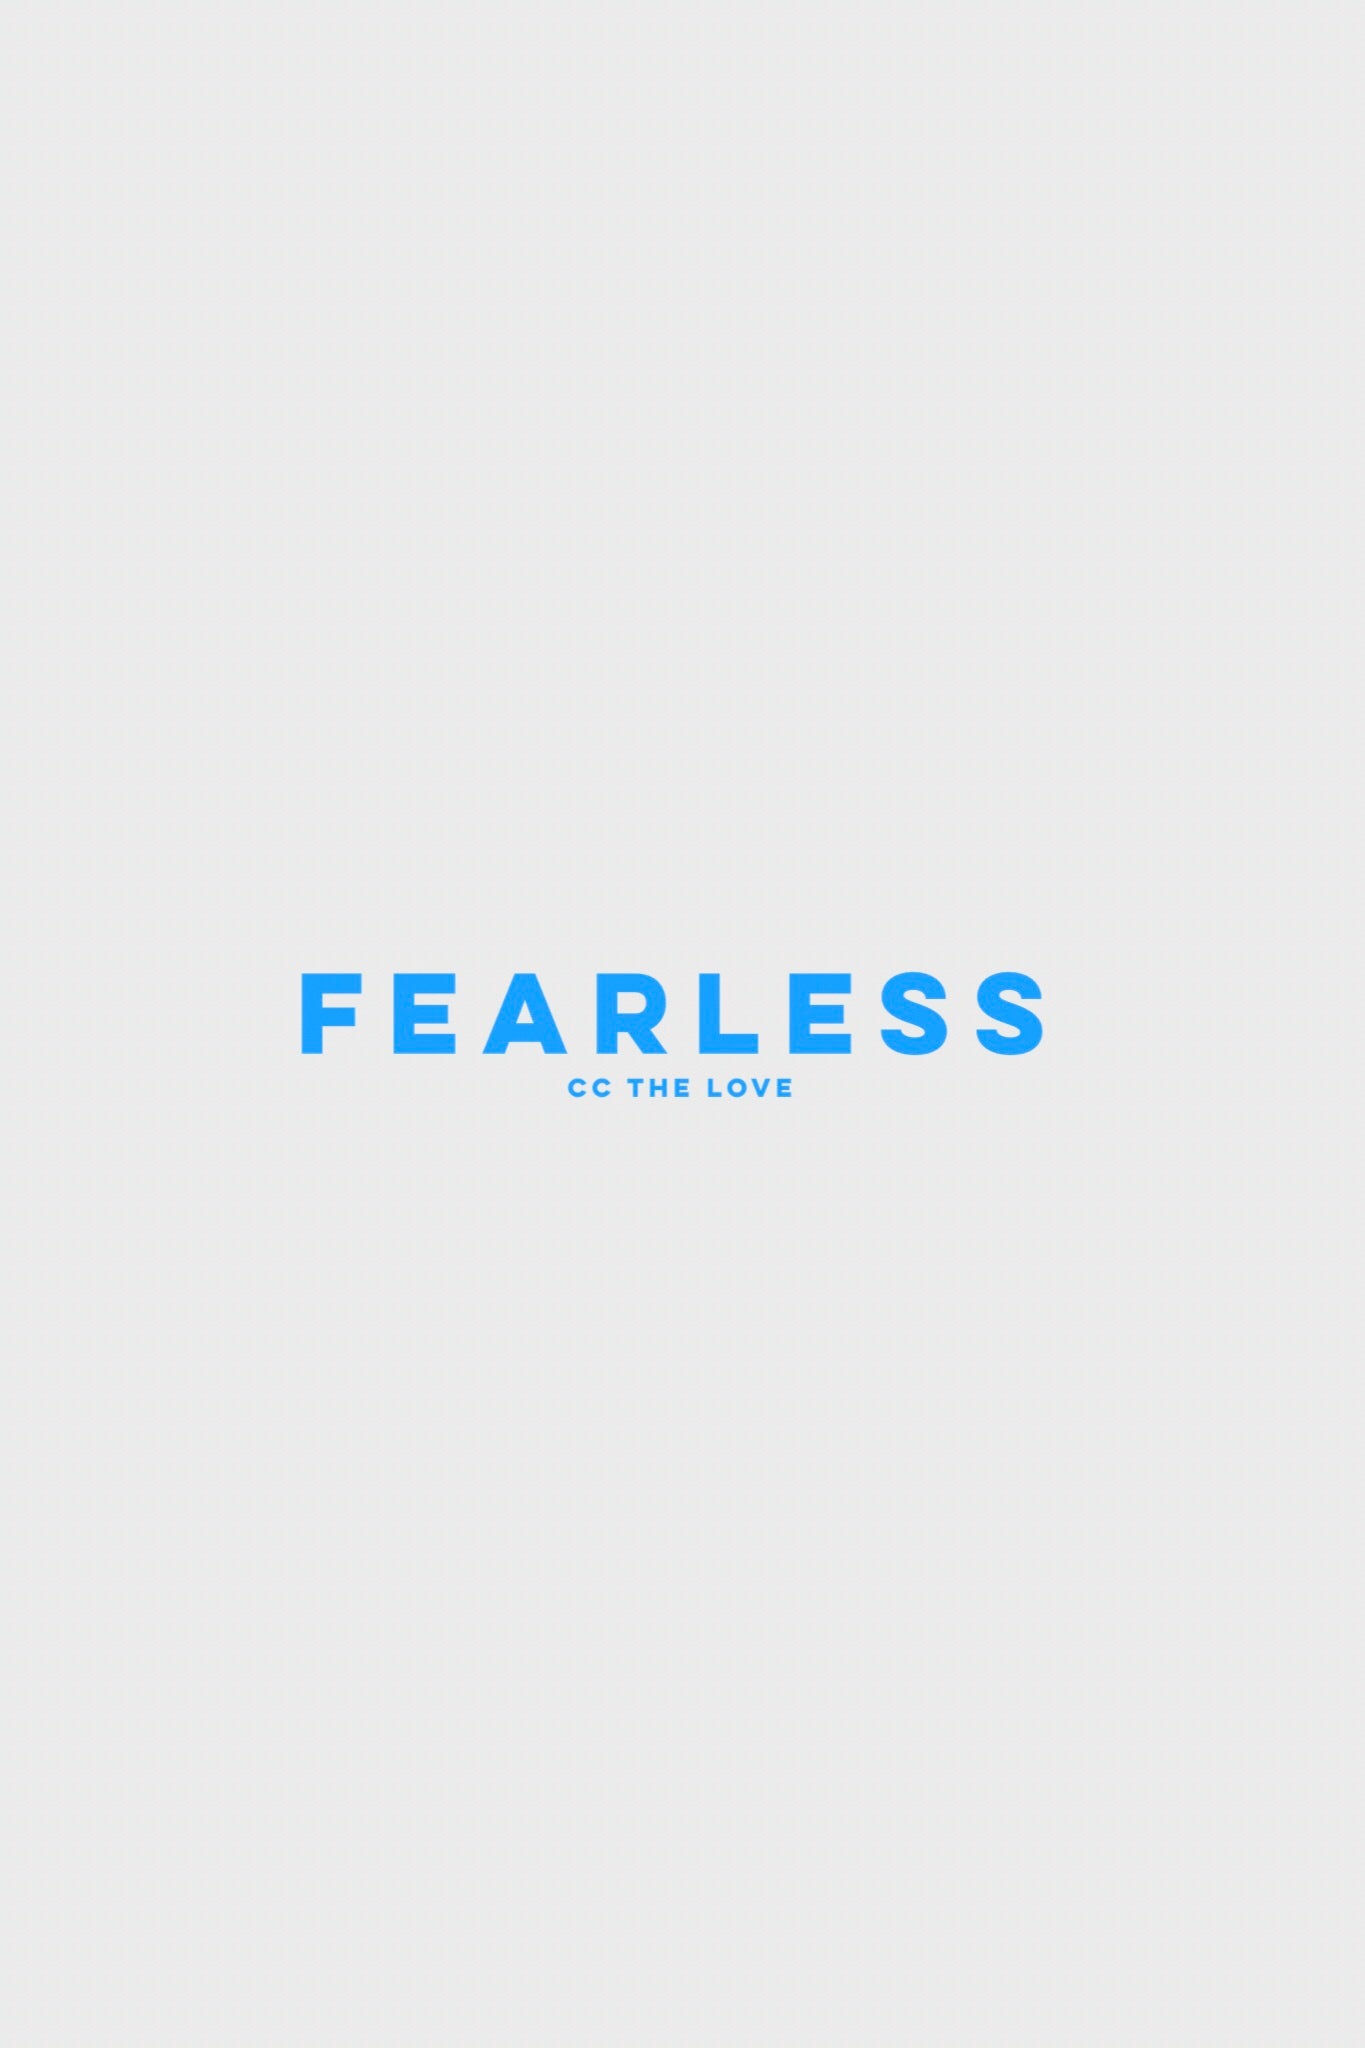 fearless by ccthelove